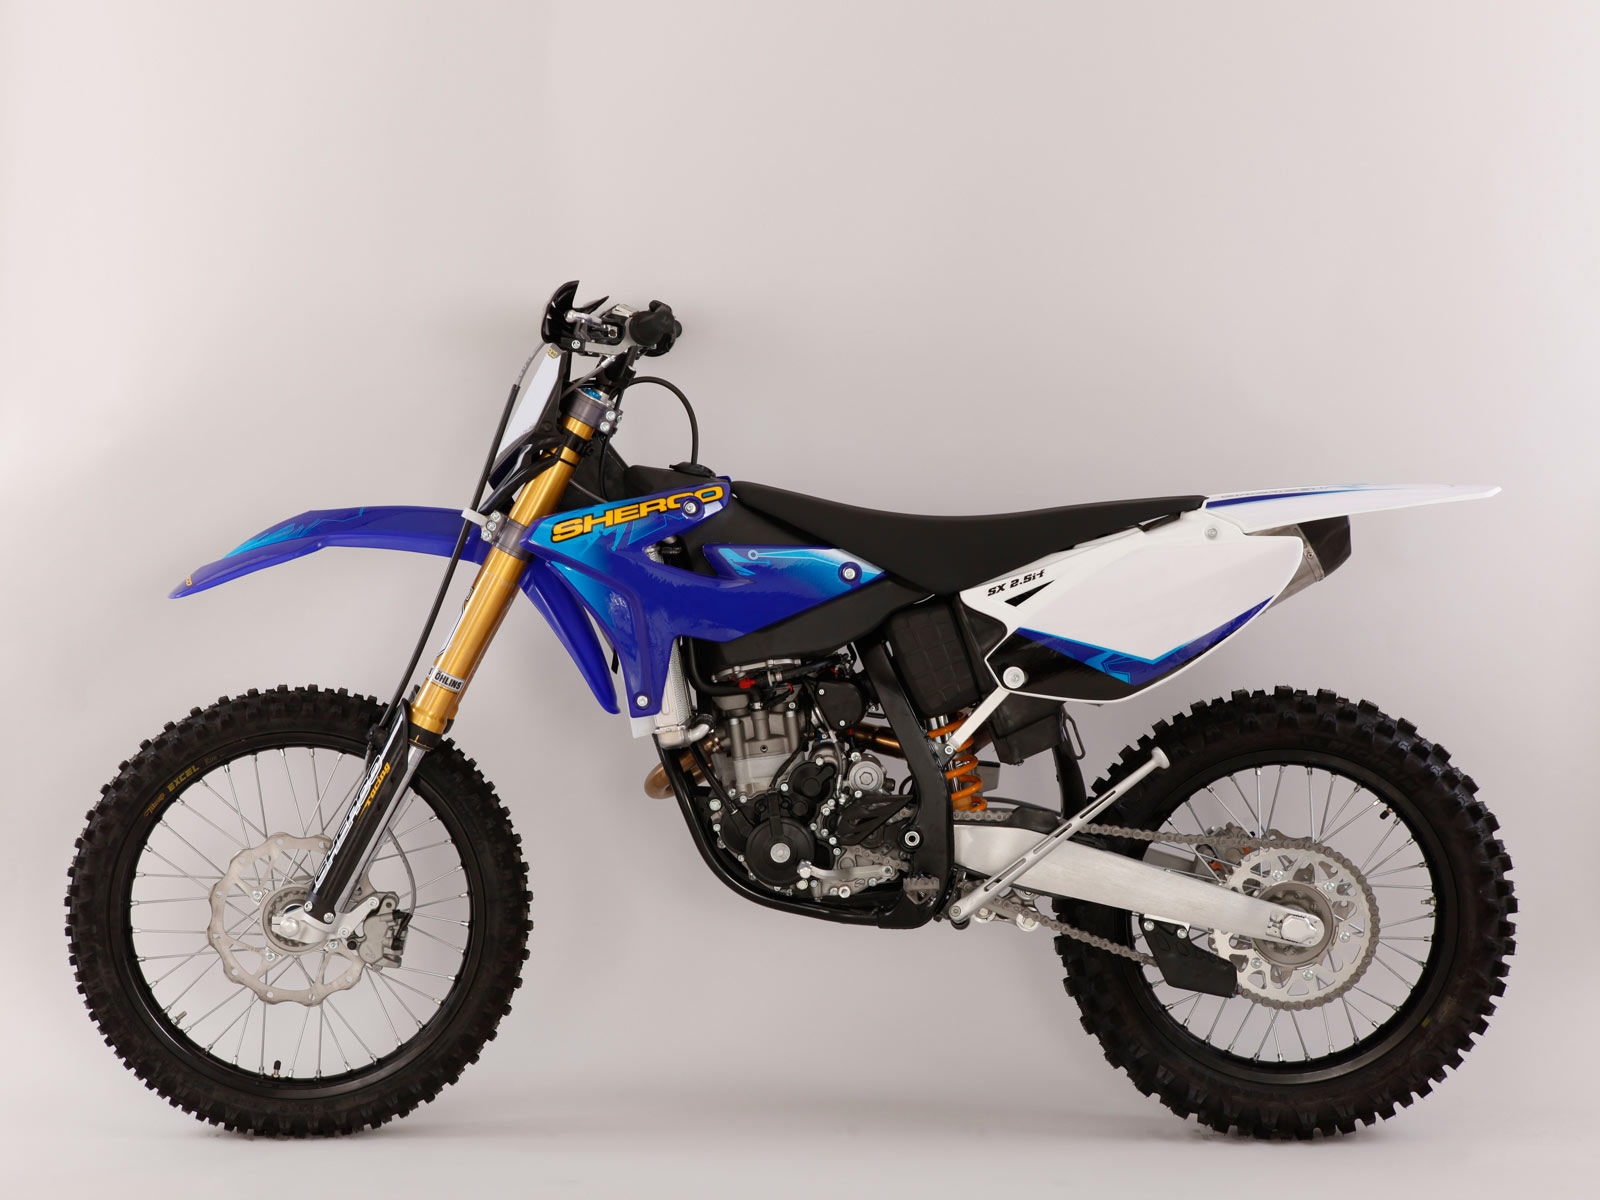 Sherco 125 Enduro Shark Replica images #124642